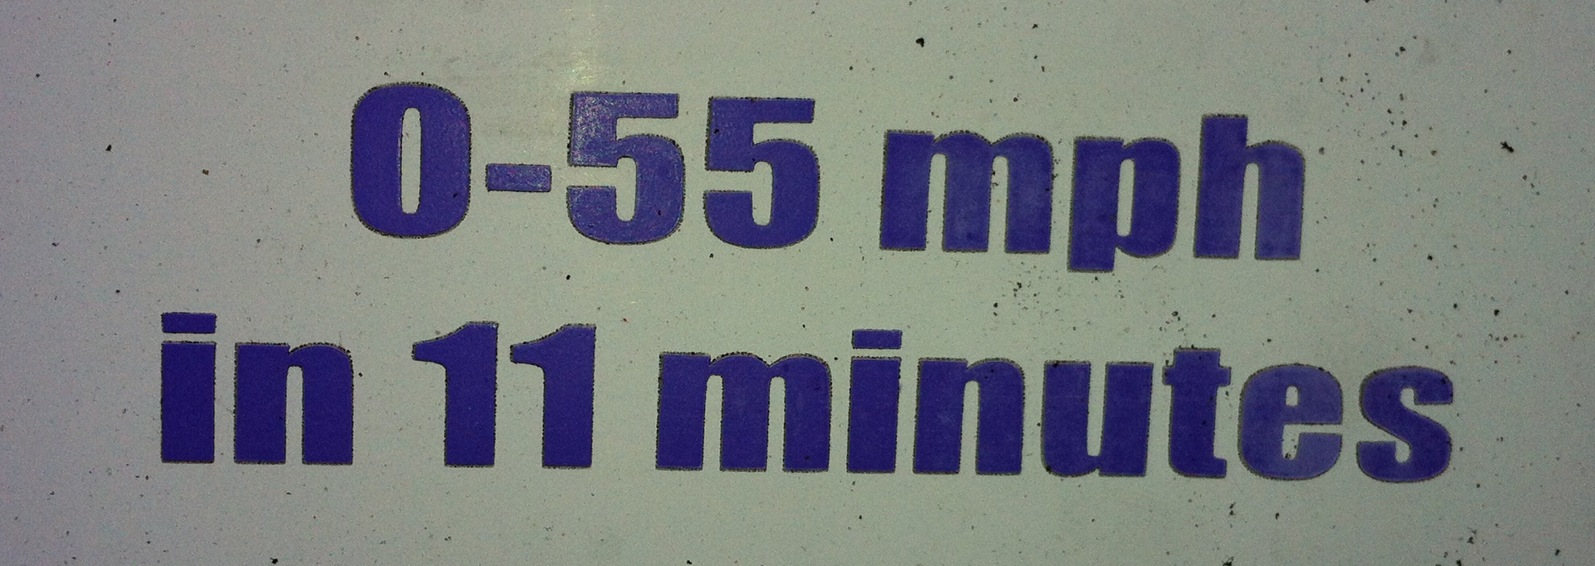 "Bumper Sticker reading ""0 to 55 mph in 11 minutes)"